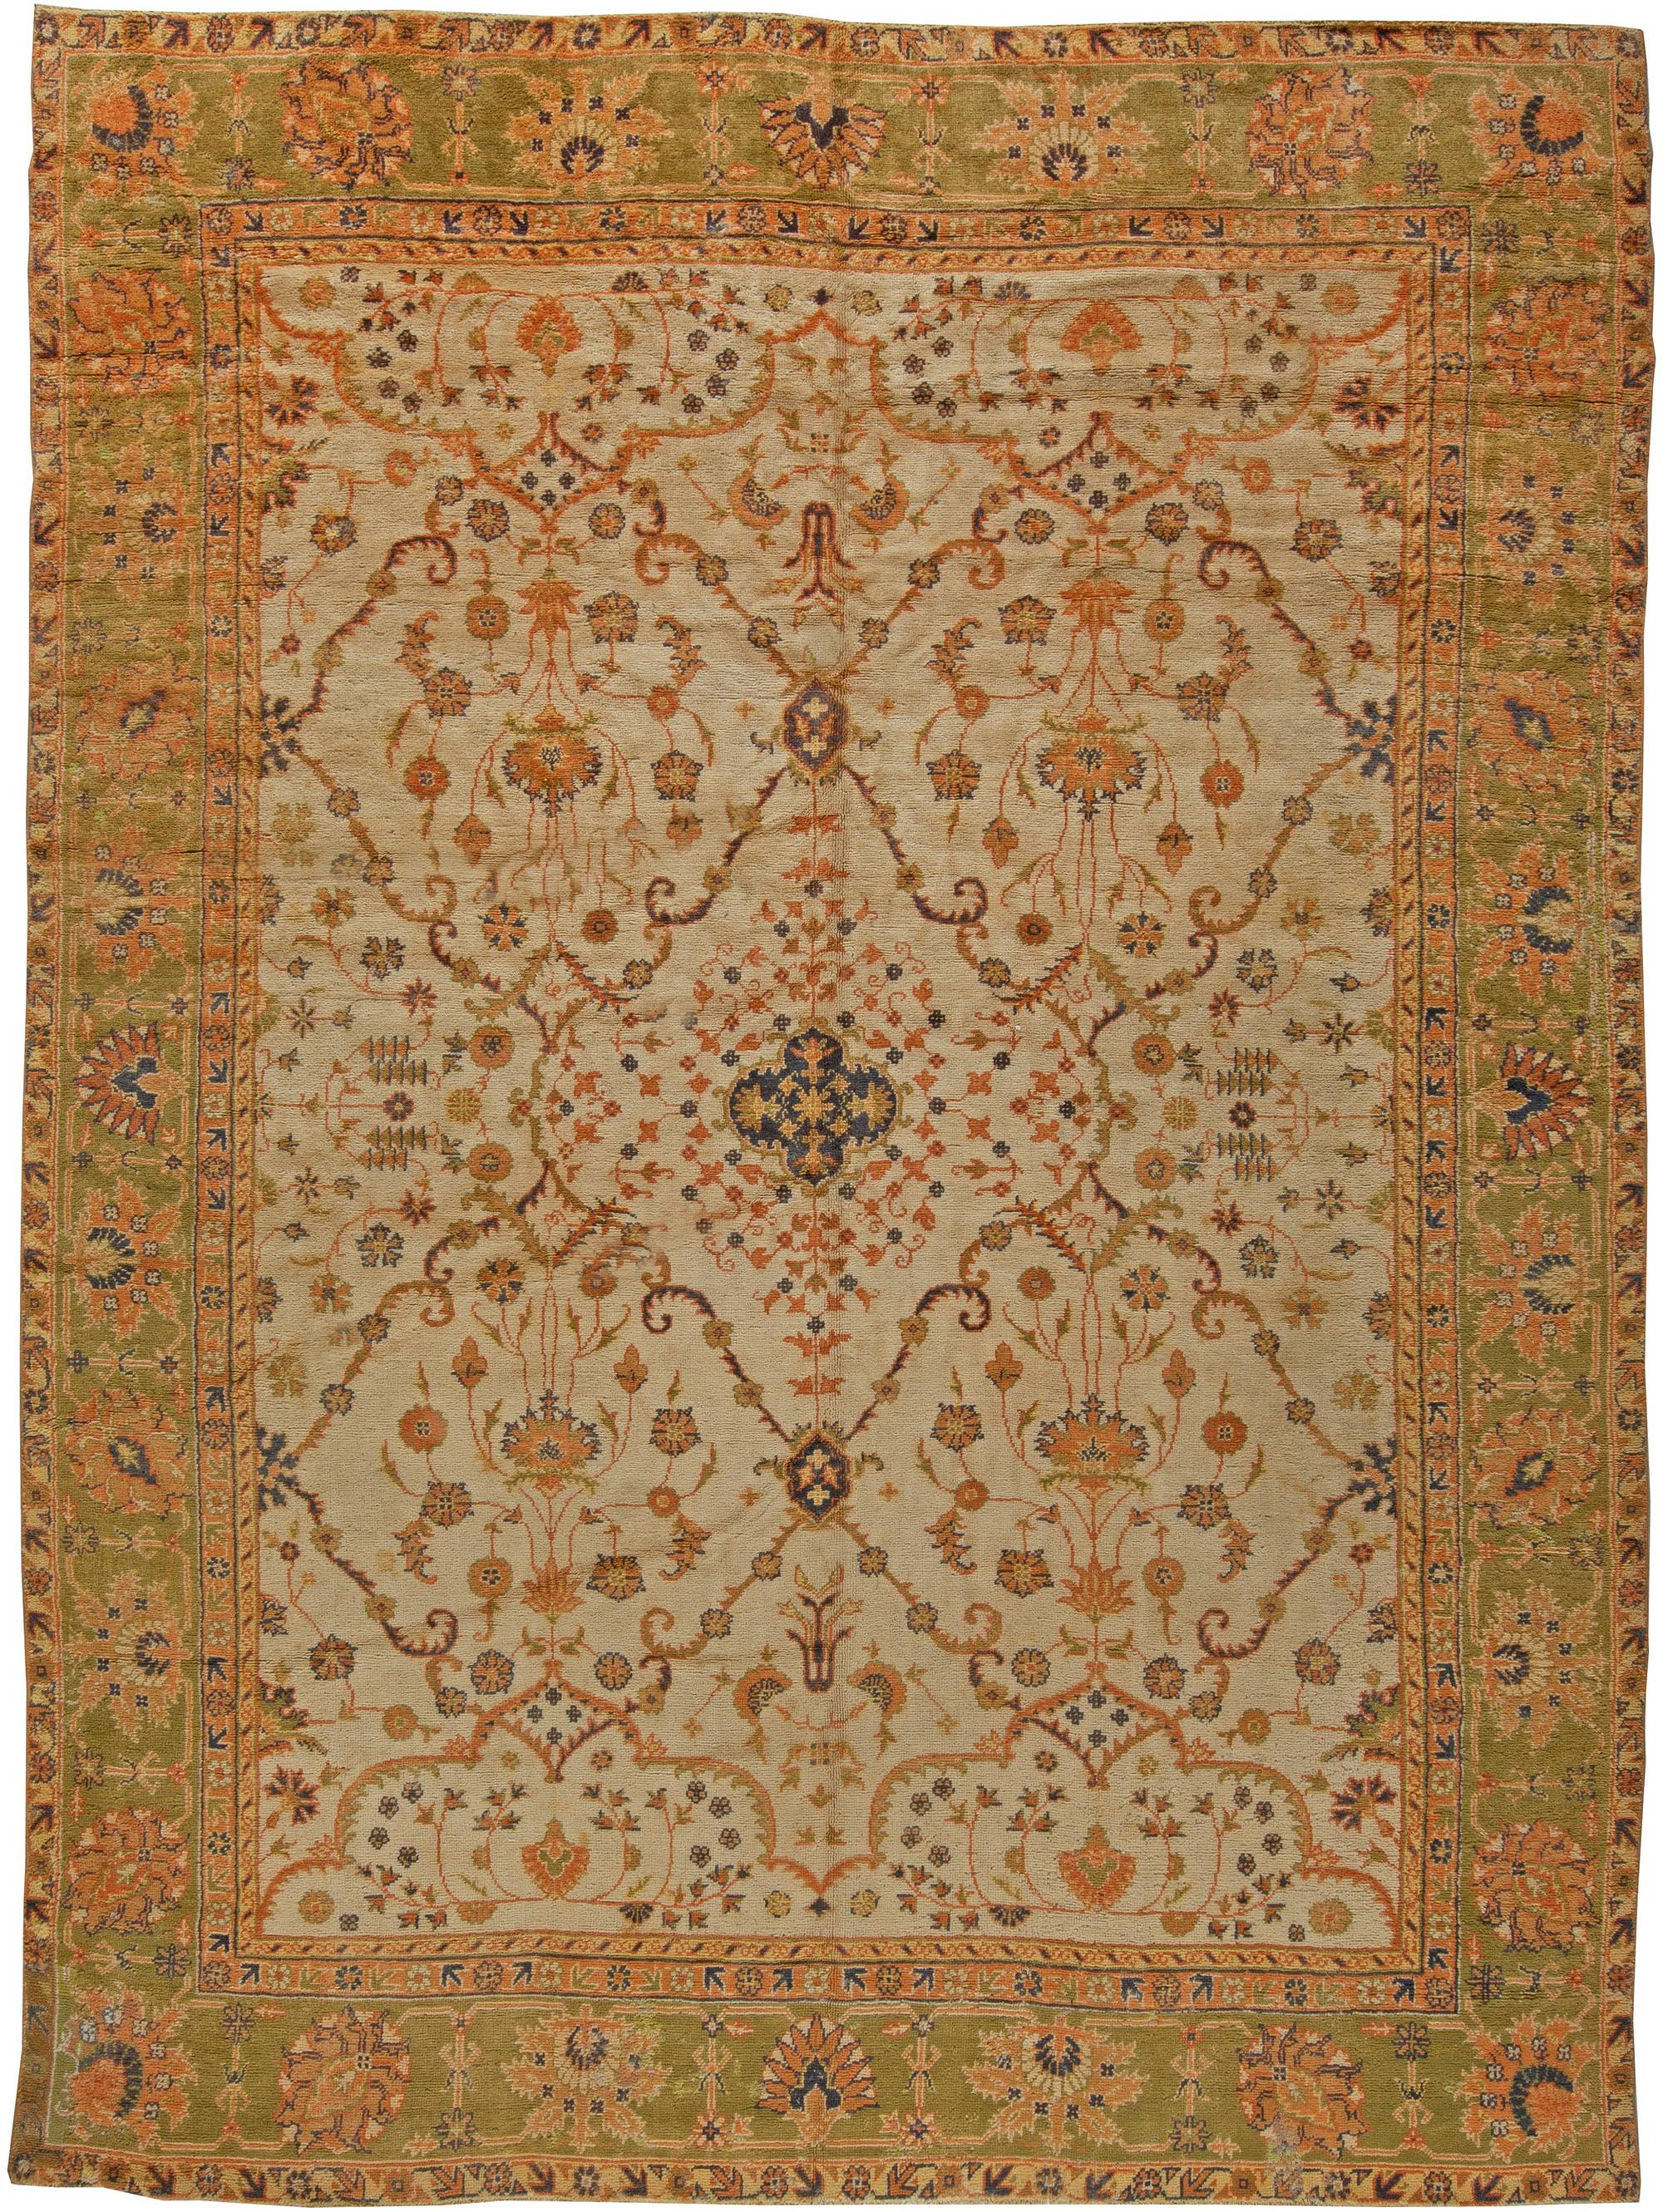 Antique Turkish Rugs By Doris Leslie Blau New York